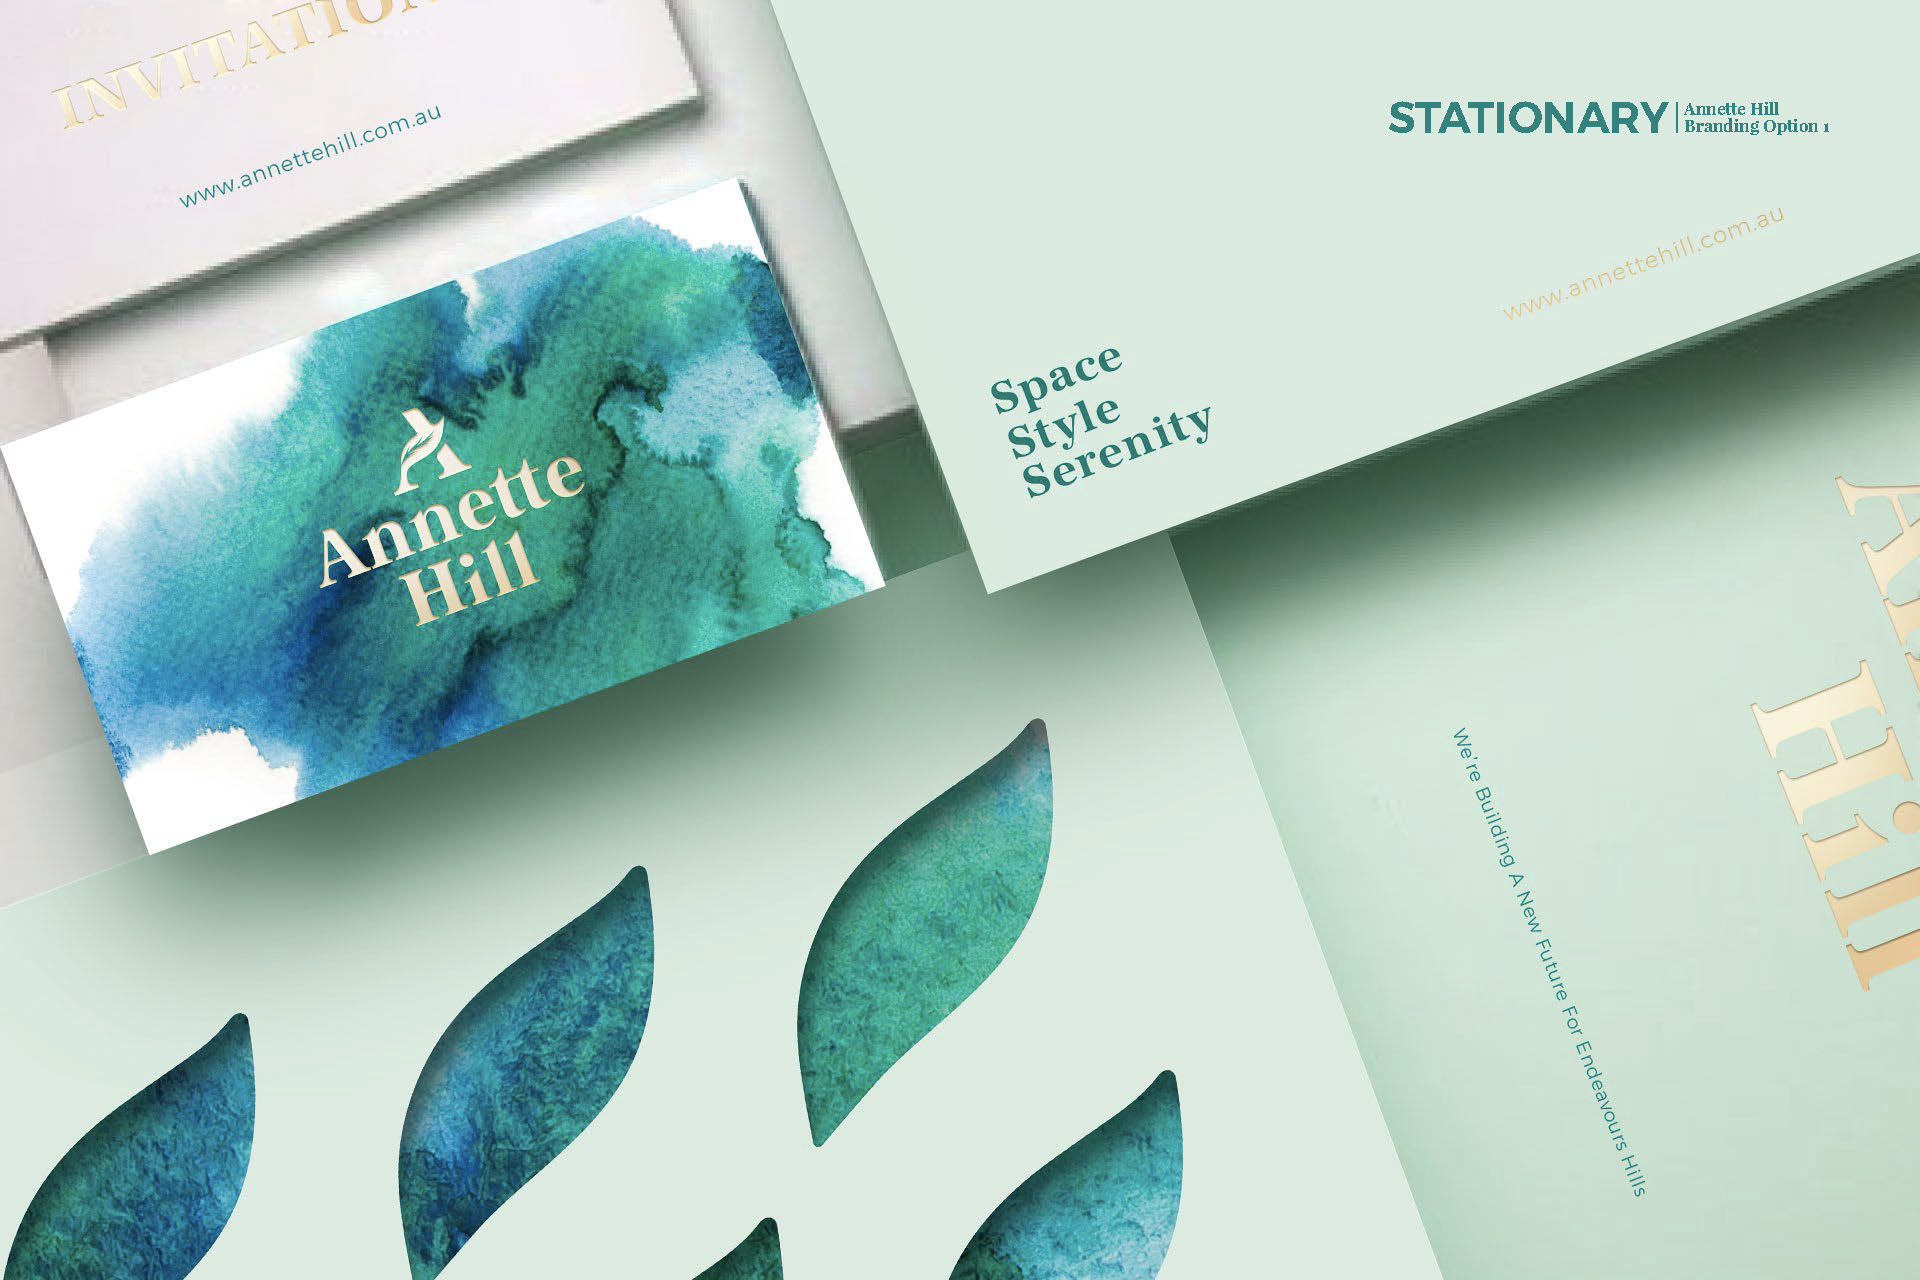 Annette Hill Property Branding by Z Creative Studio Branding & Graphic Design Melbourne